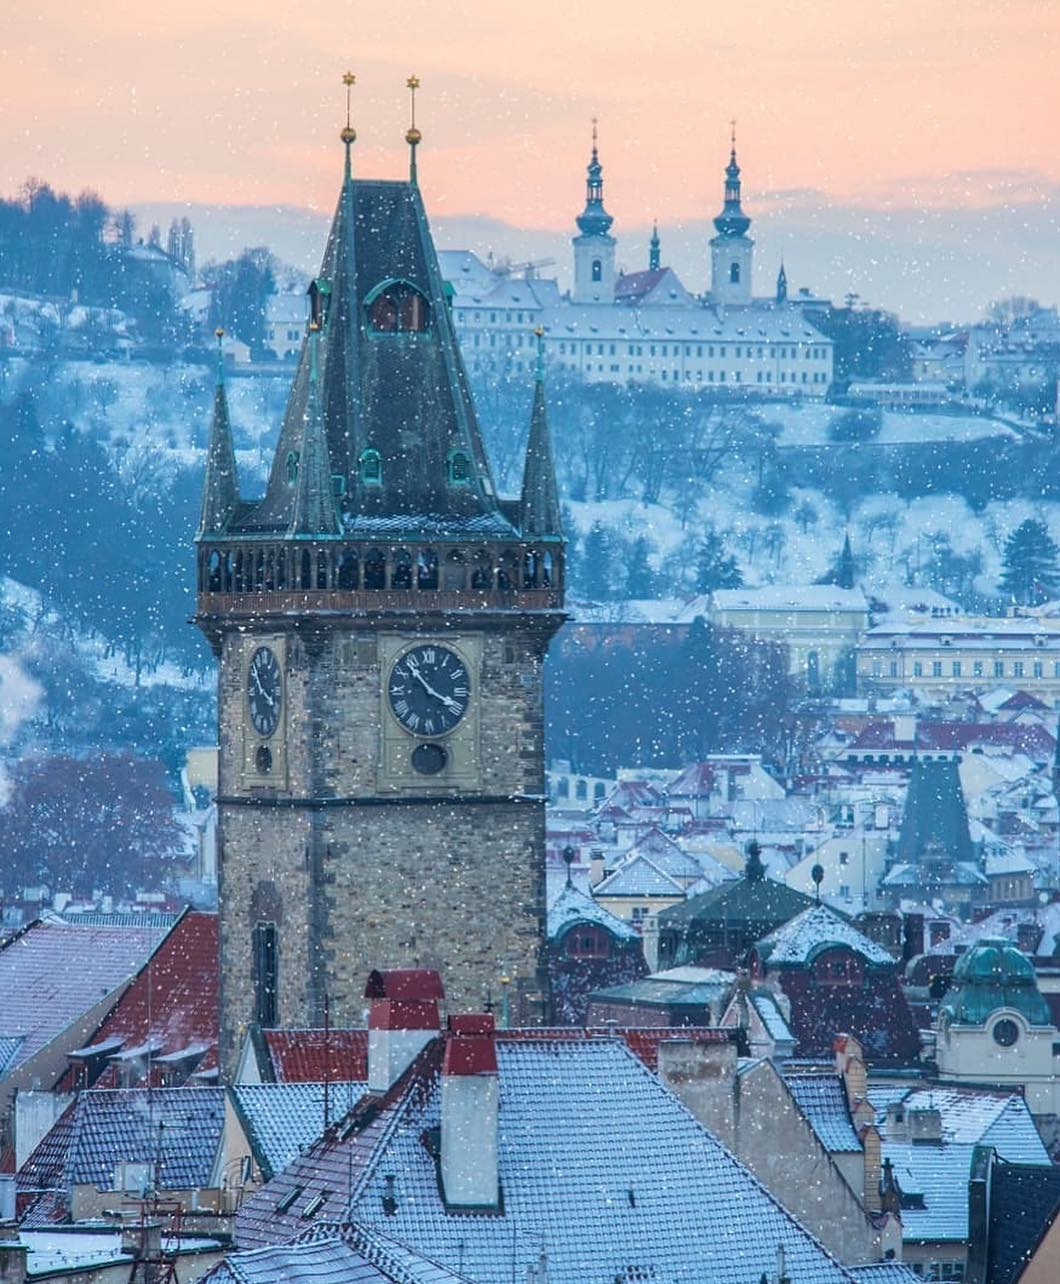 clock tower and rooftops of old town prague covered in snow in winter